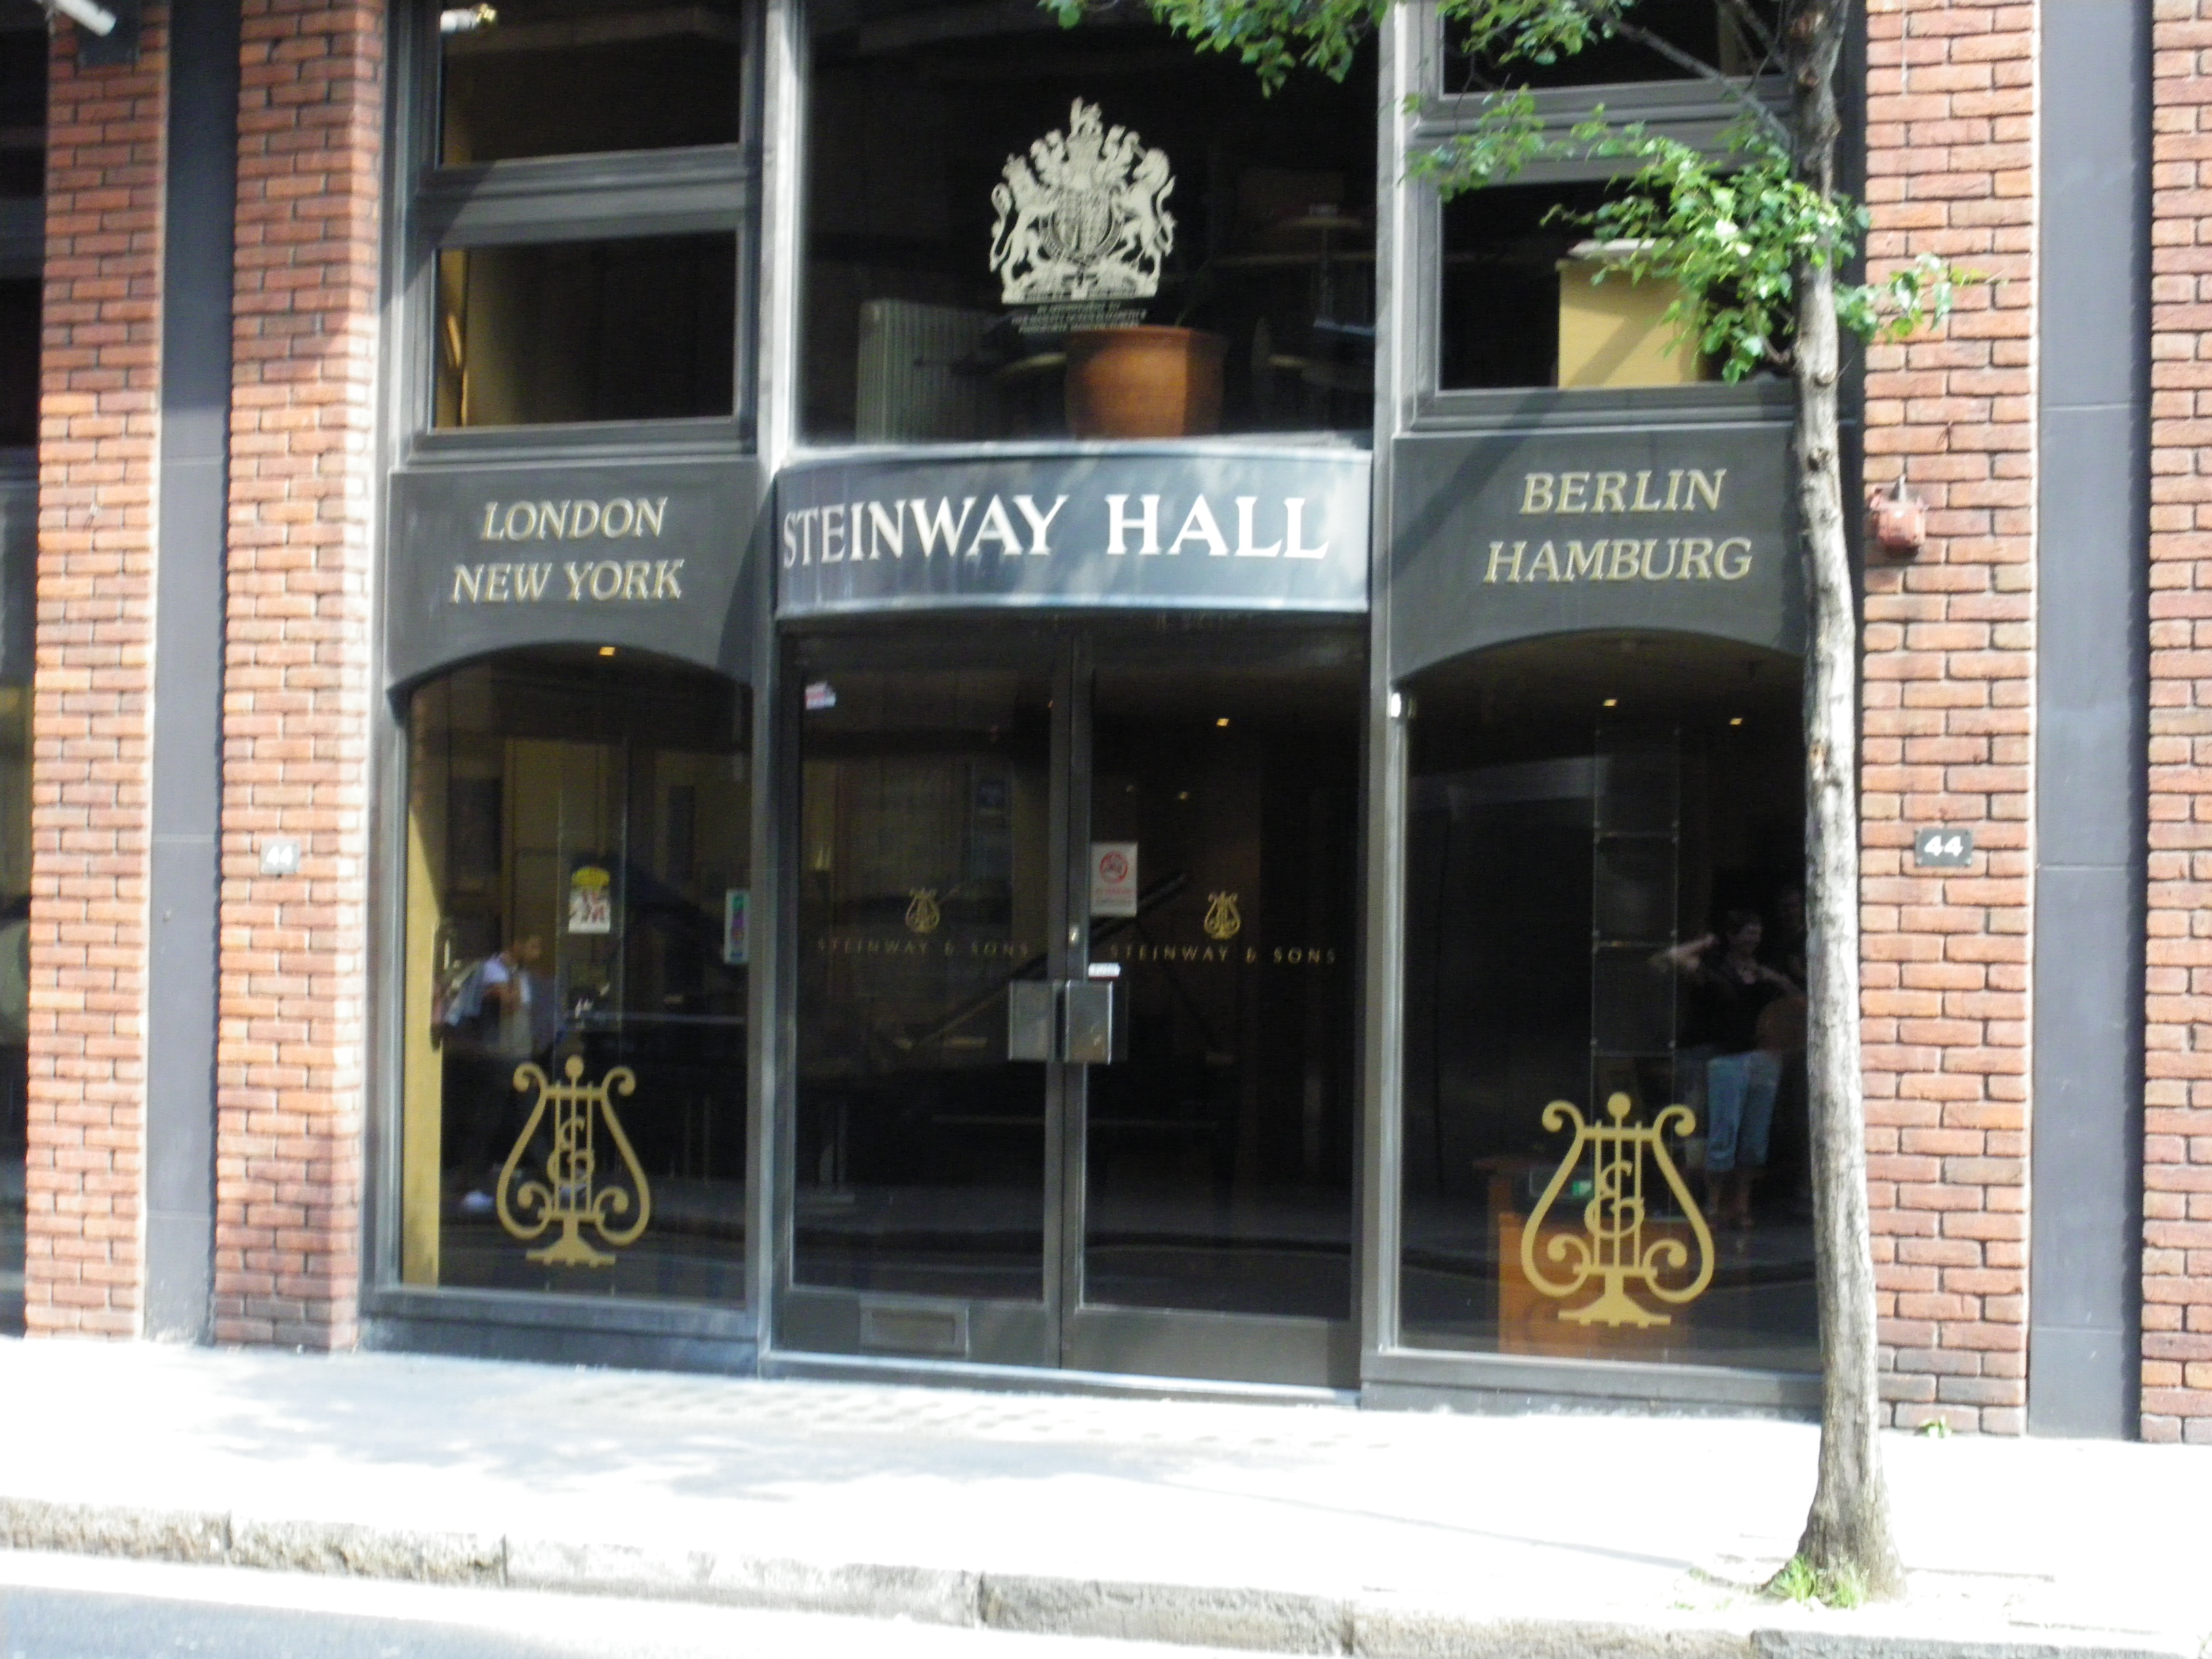 steinway hall   london Hentai vs Nordvargr   Semen